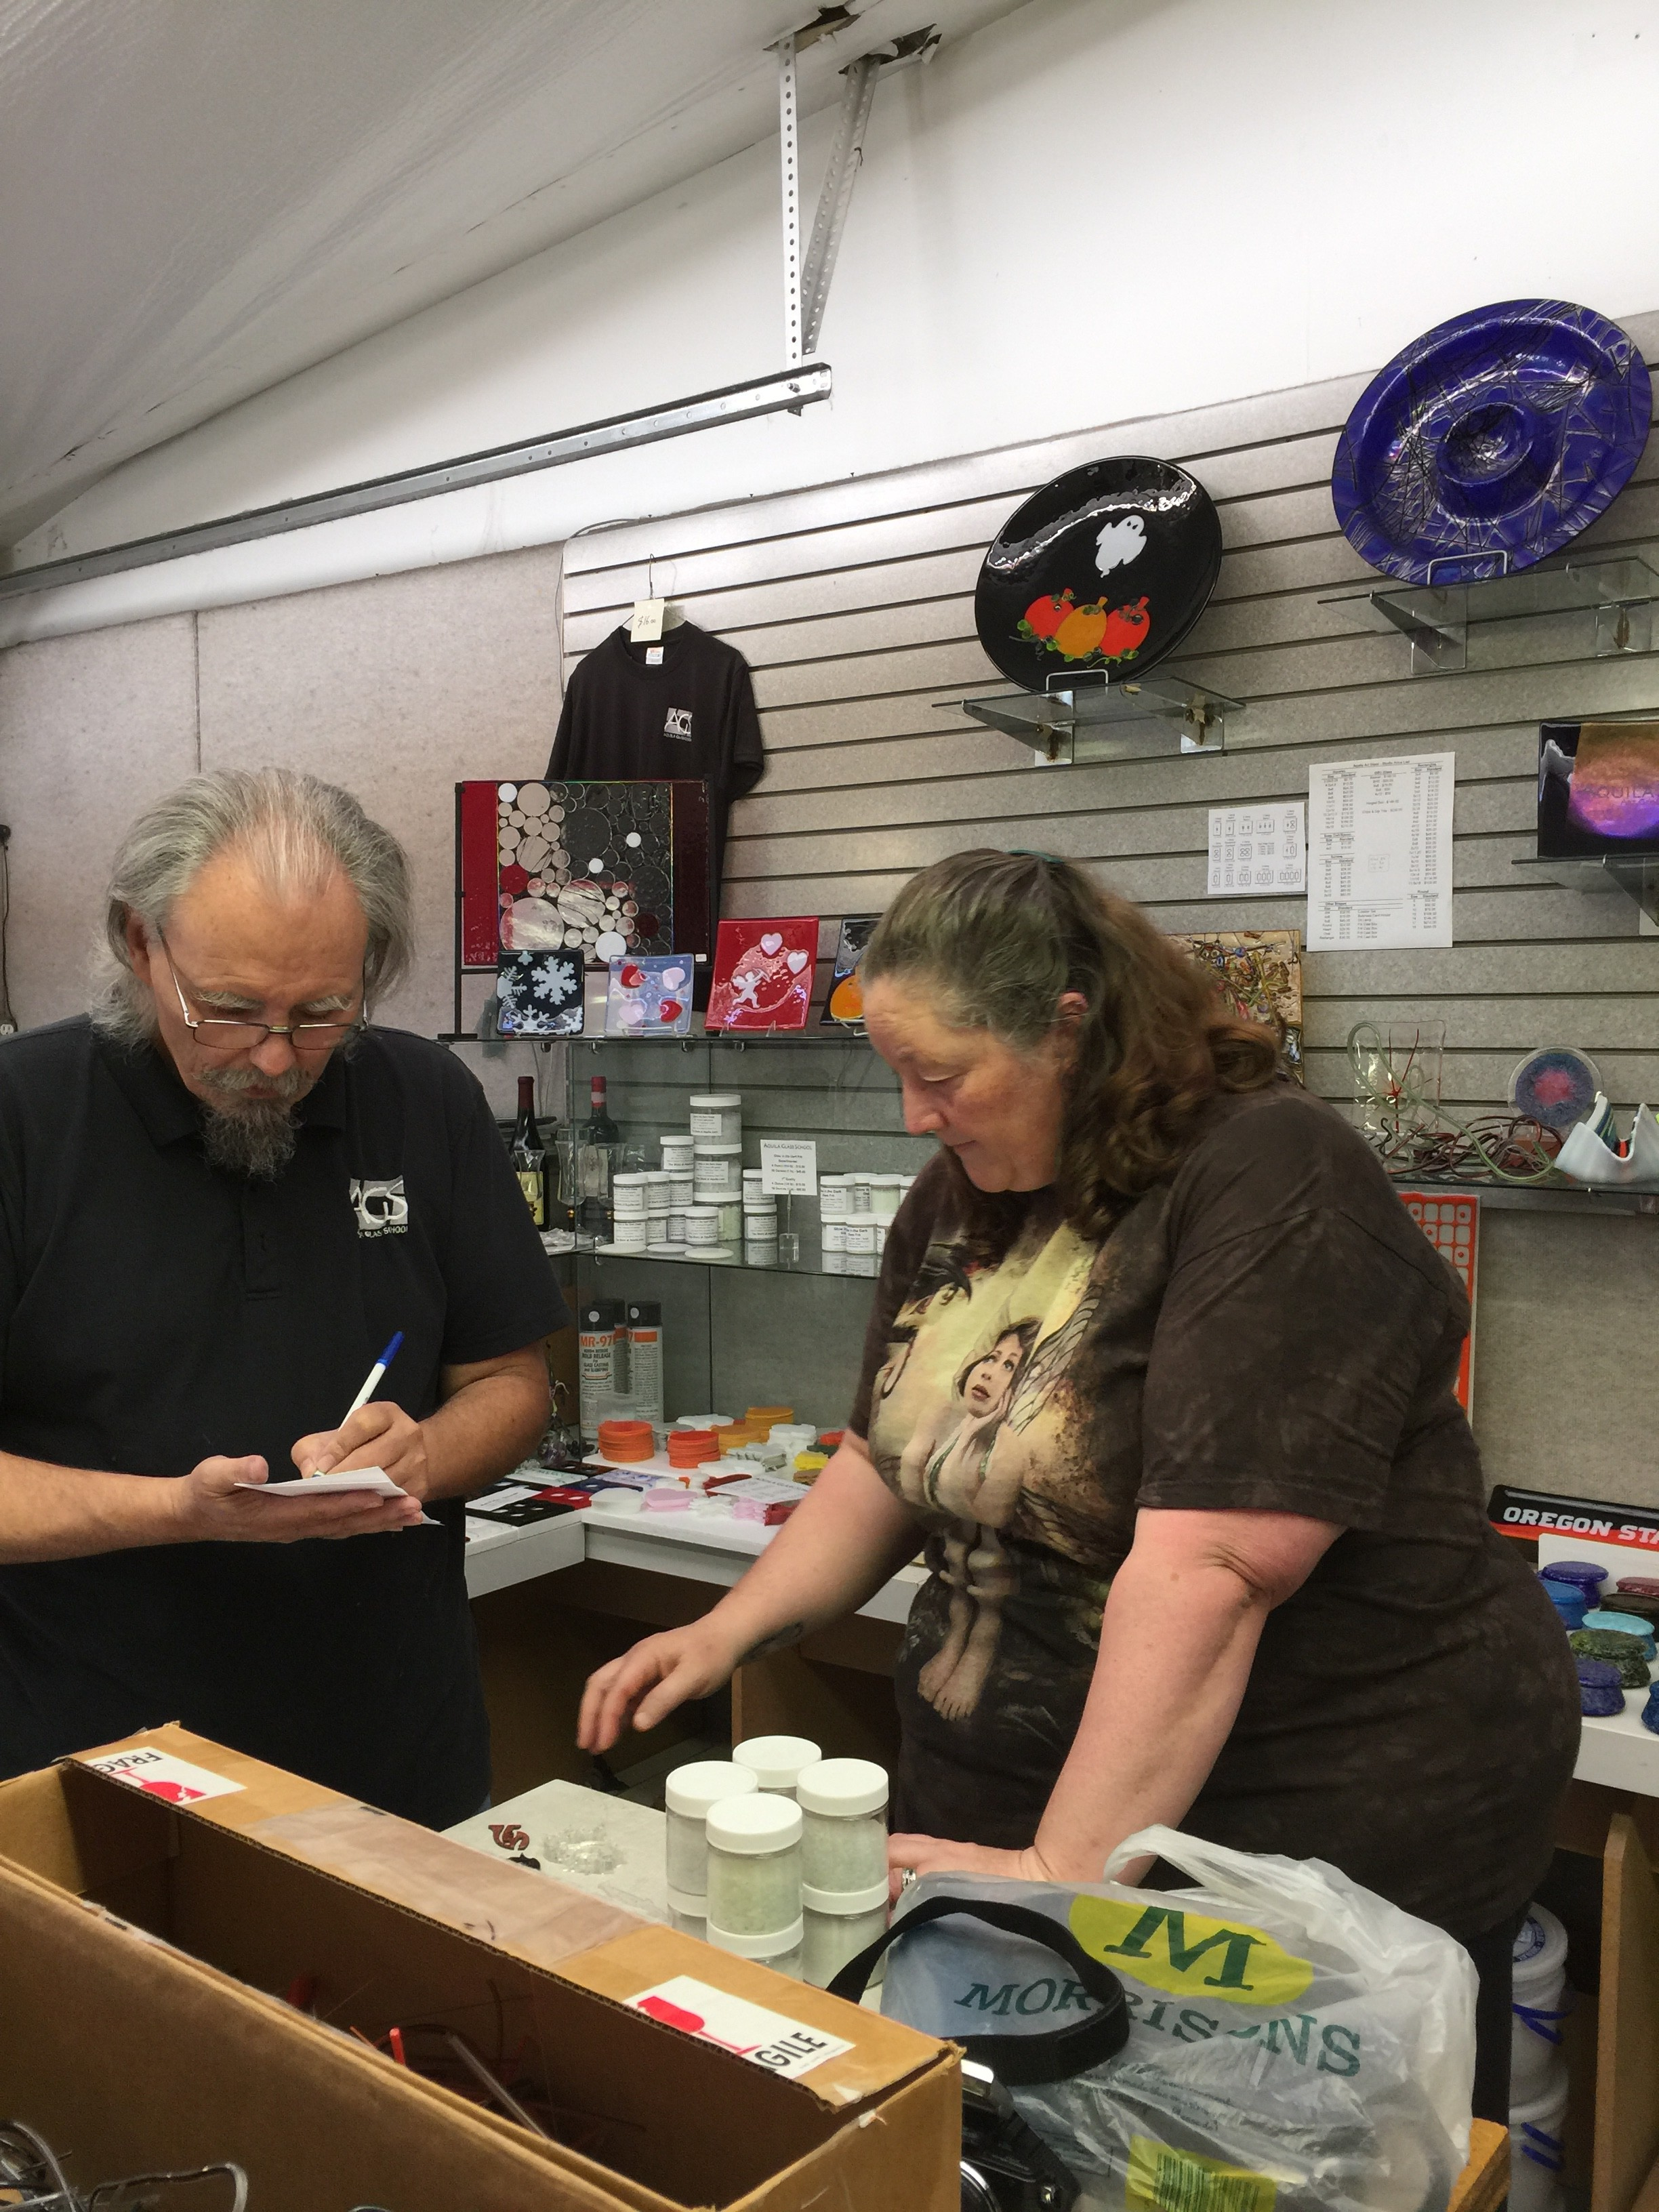 My visit with Aquila Art Glass Studio and my first Borosilicate flameworking